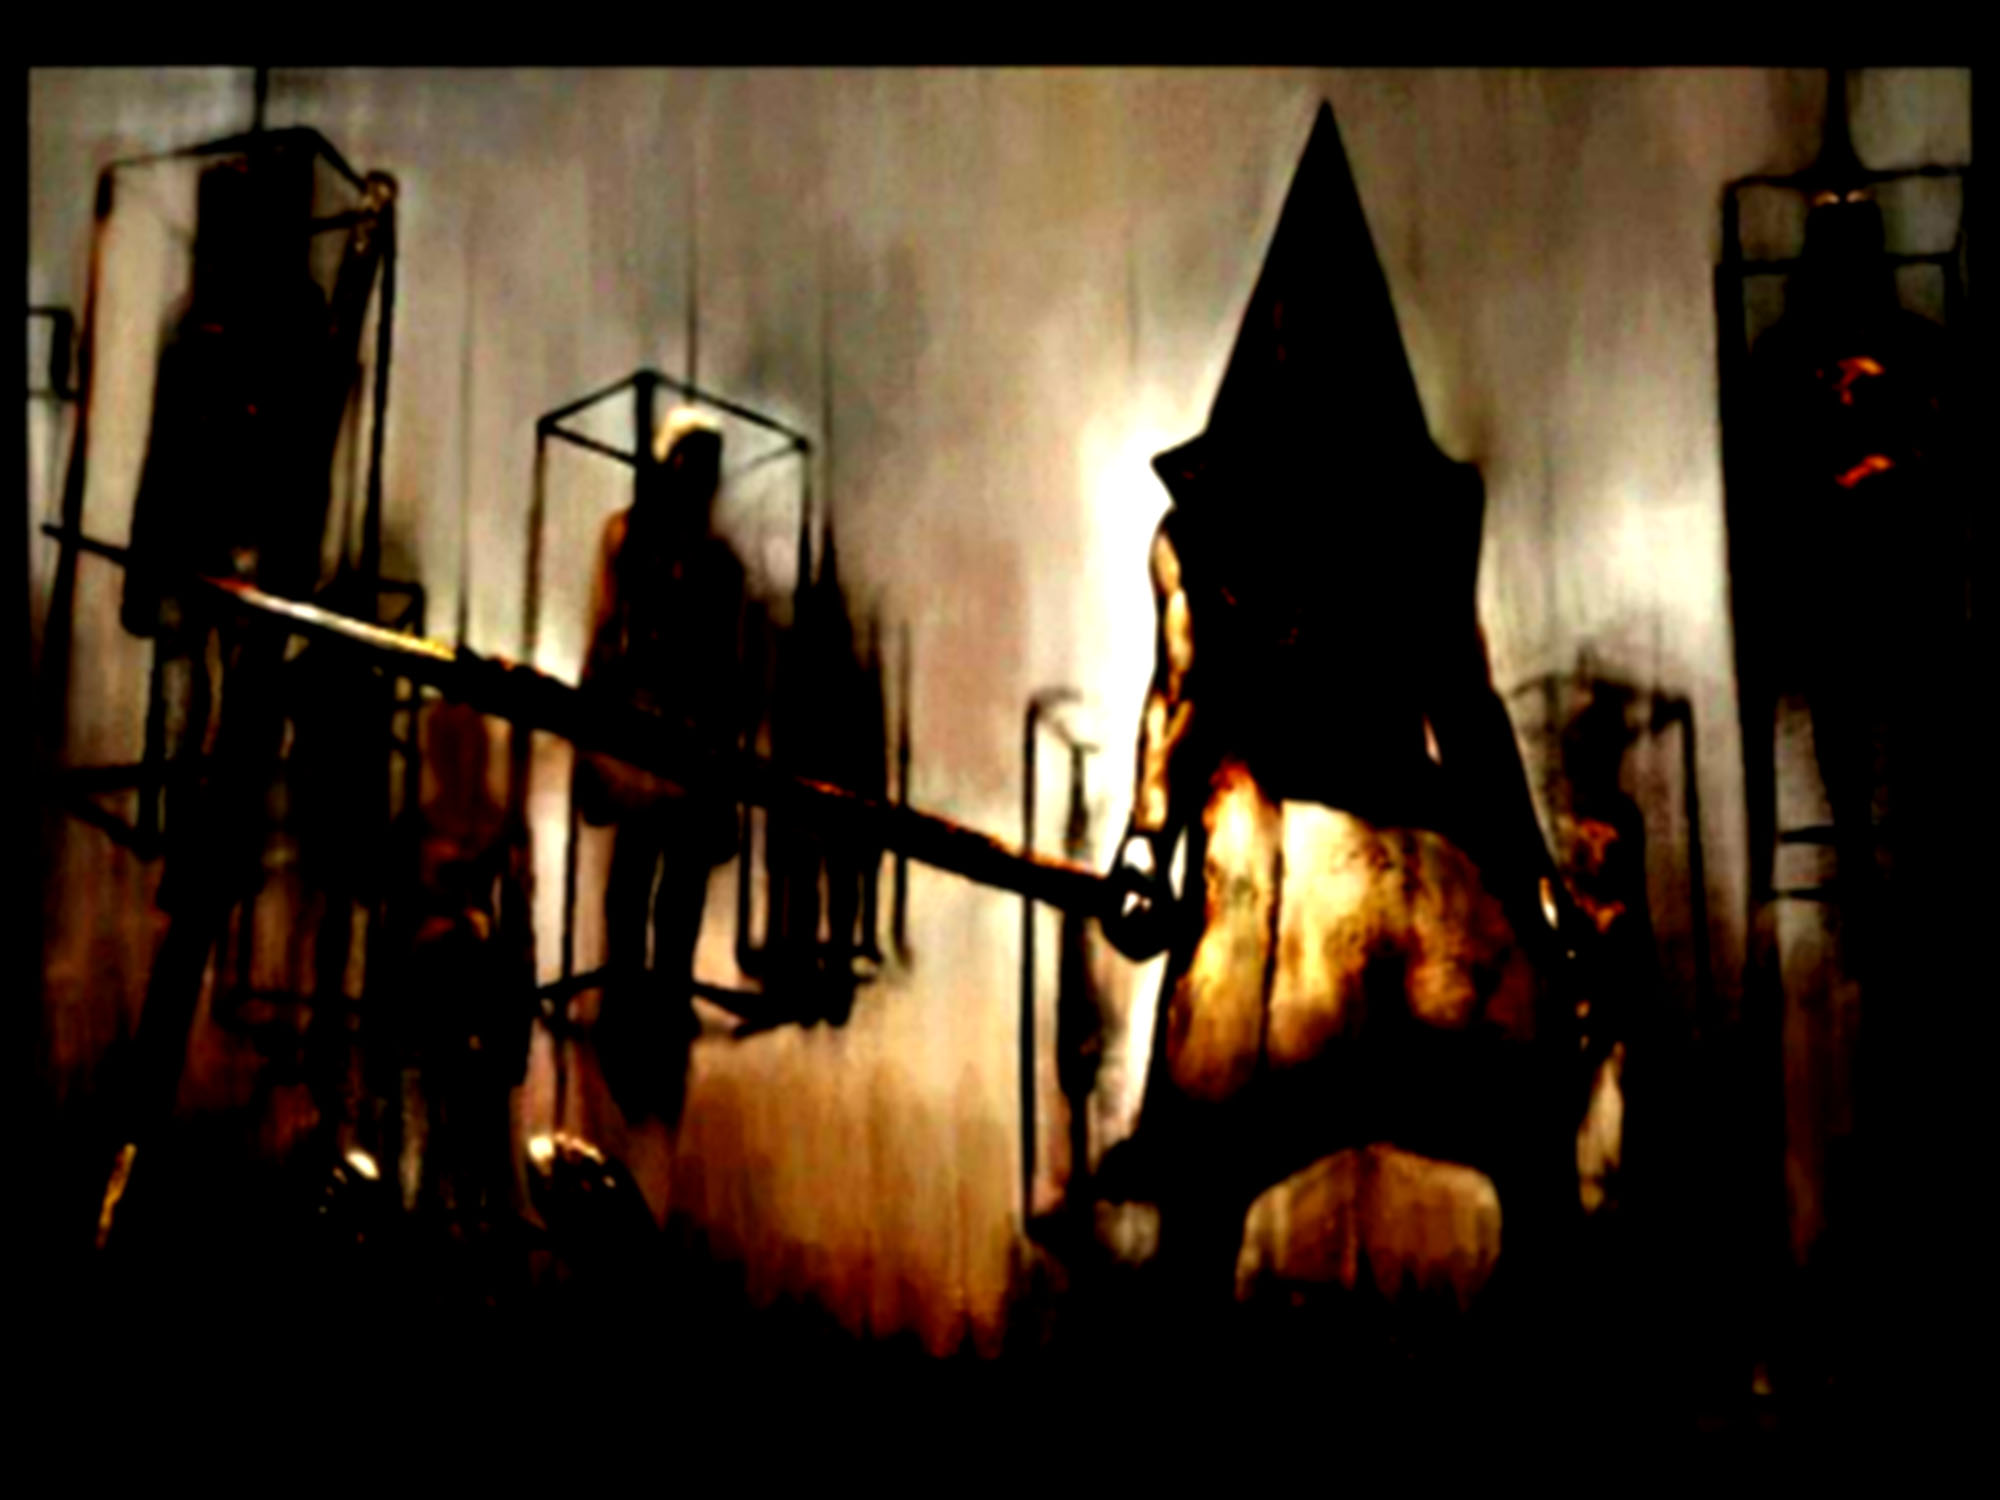 Silent Hill HD Wallpaper   Background Image   2000x1500 ...